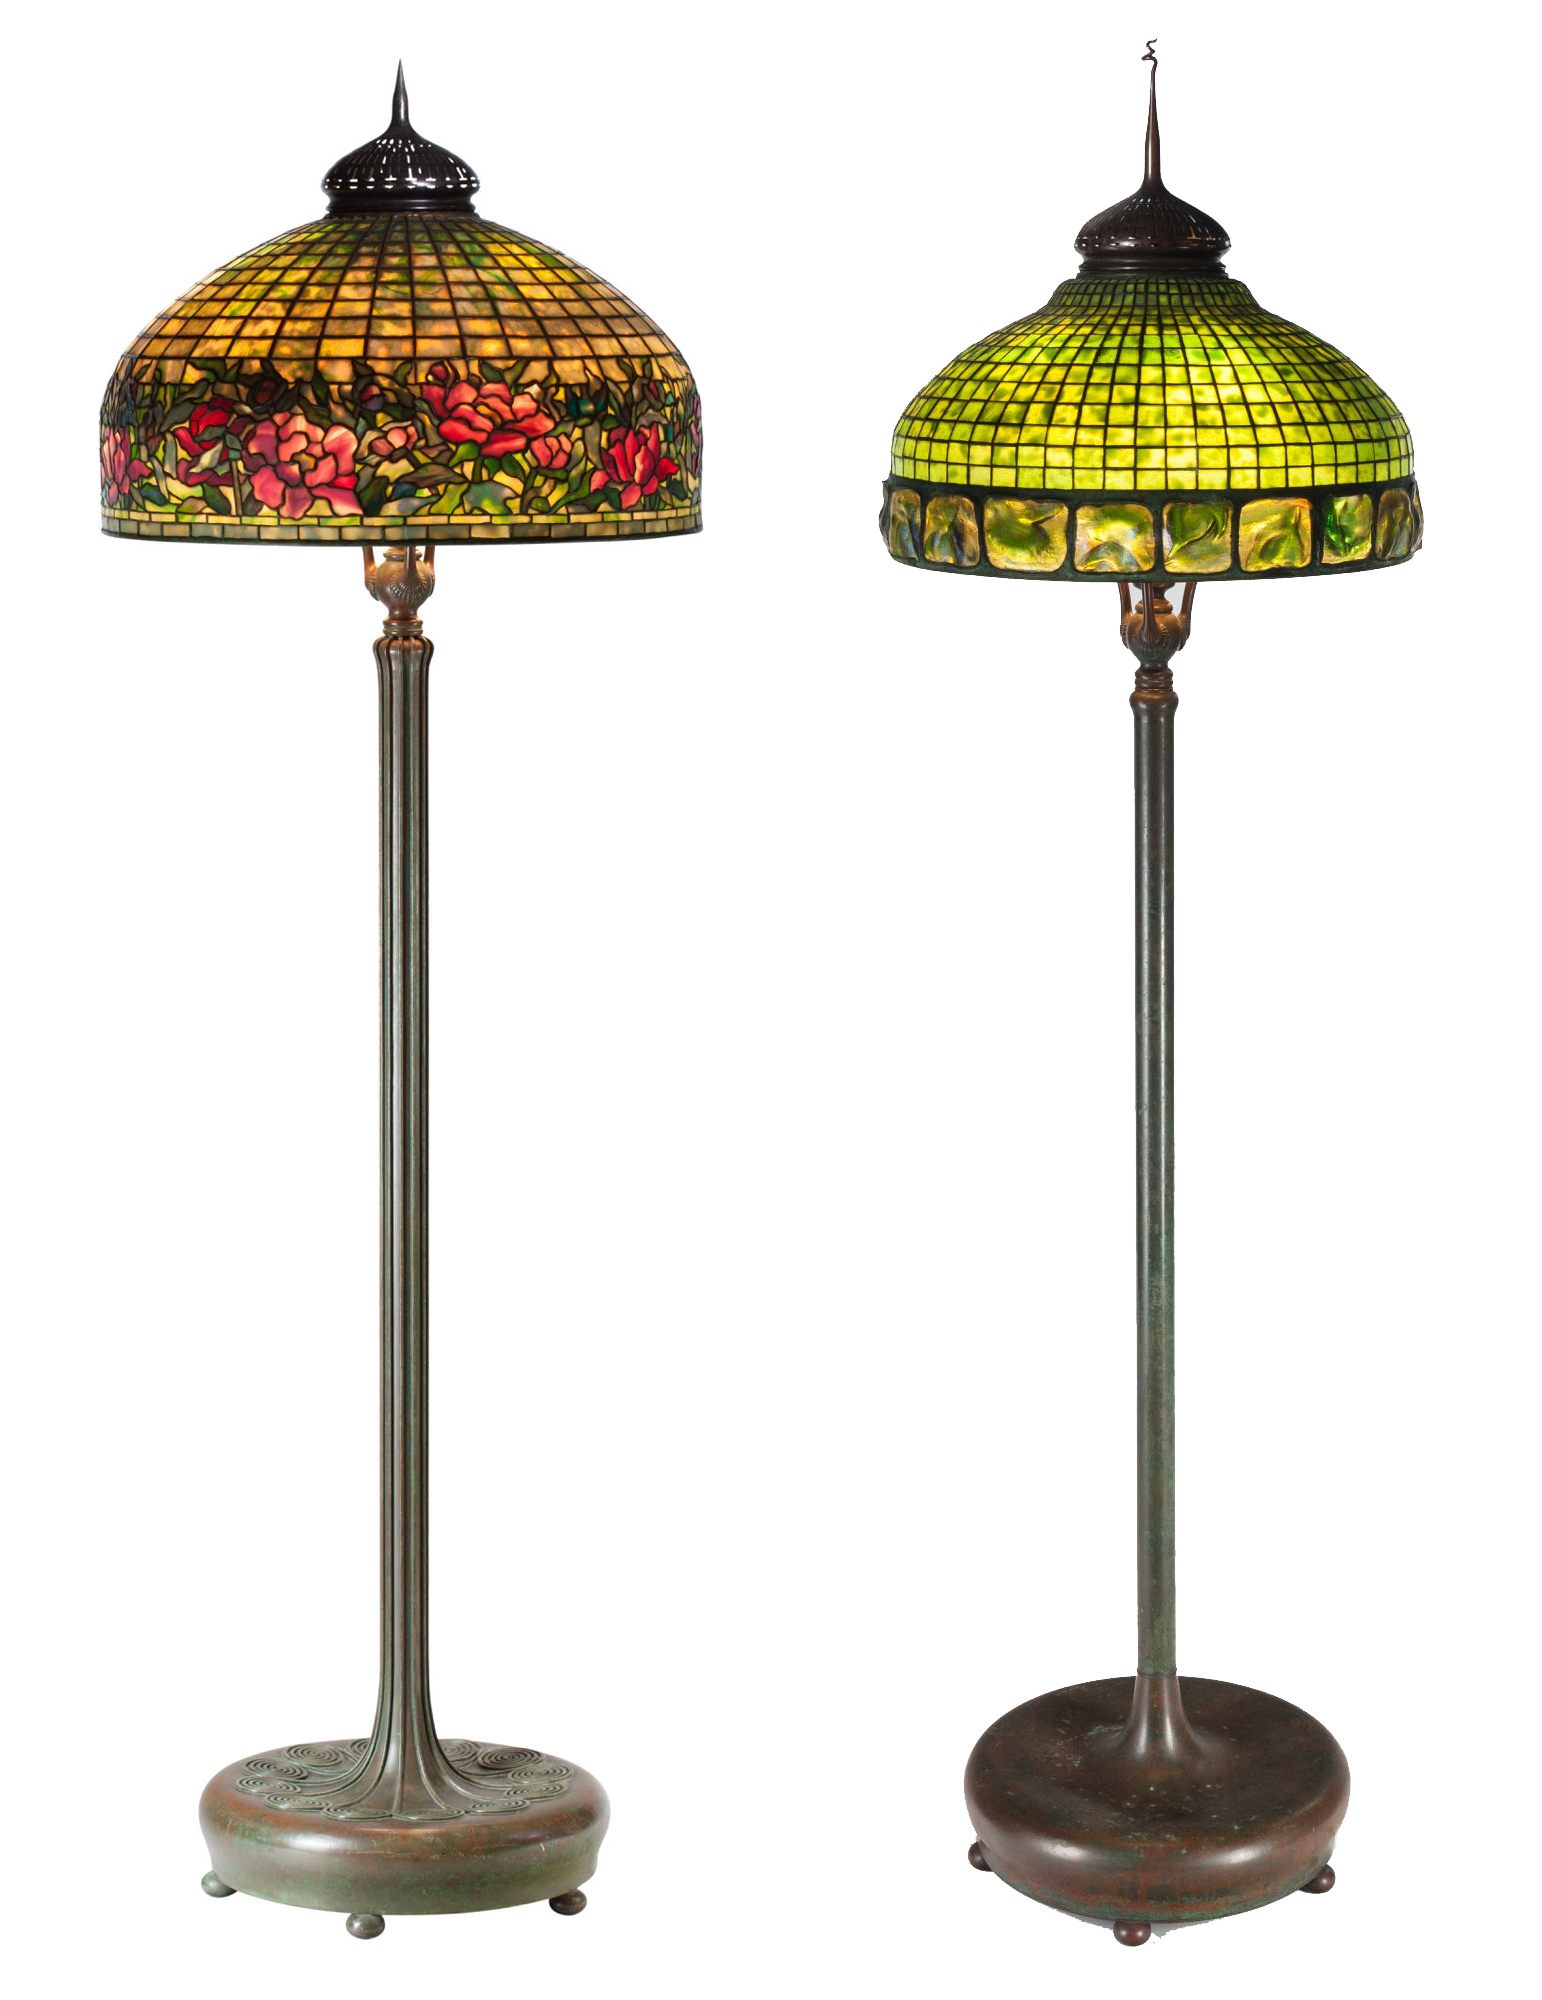 Tiffany Studios leaded glass and bronze floor lamps: On the left is a circa 1910 Peony Border lamp which realized: $131,000. The Turtleback tile lamp, circa 1910, sold for $106,250. Heritage Auctions images